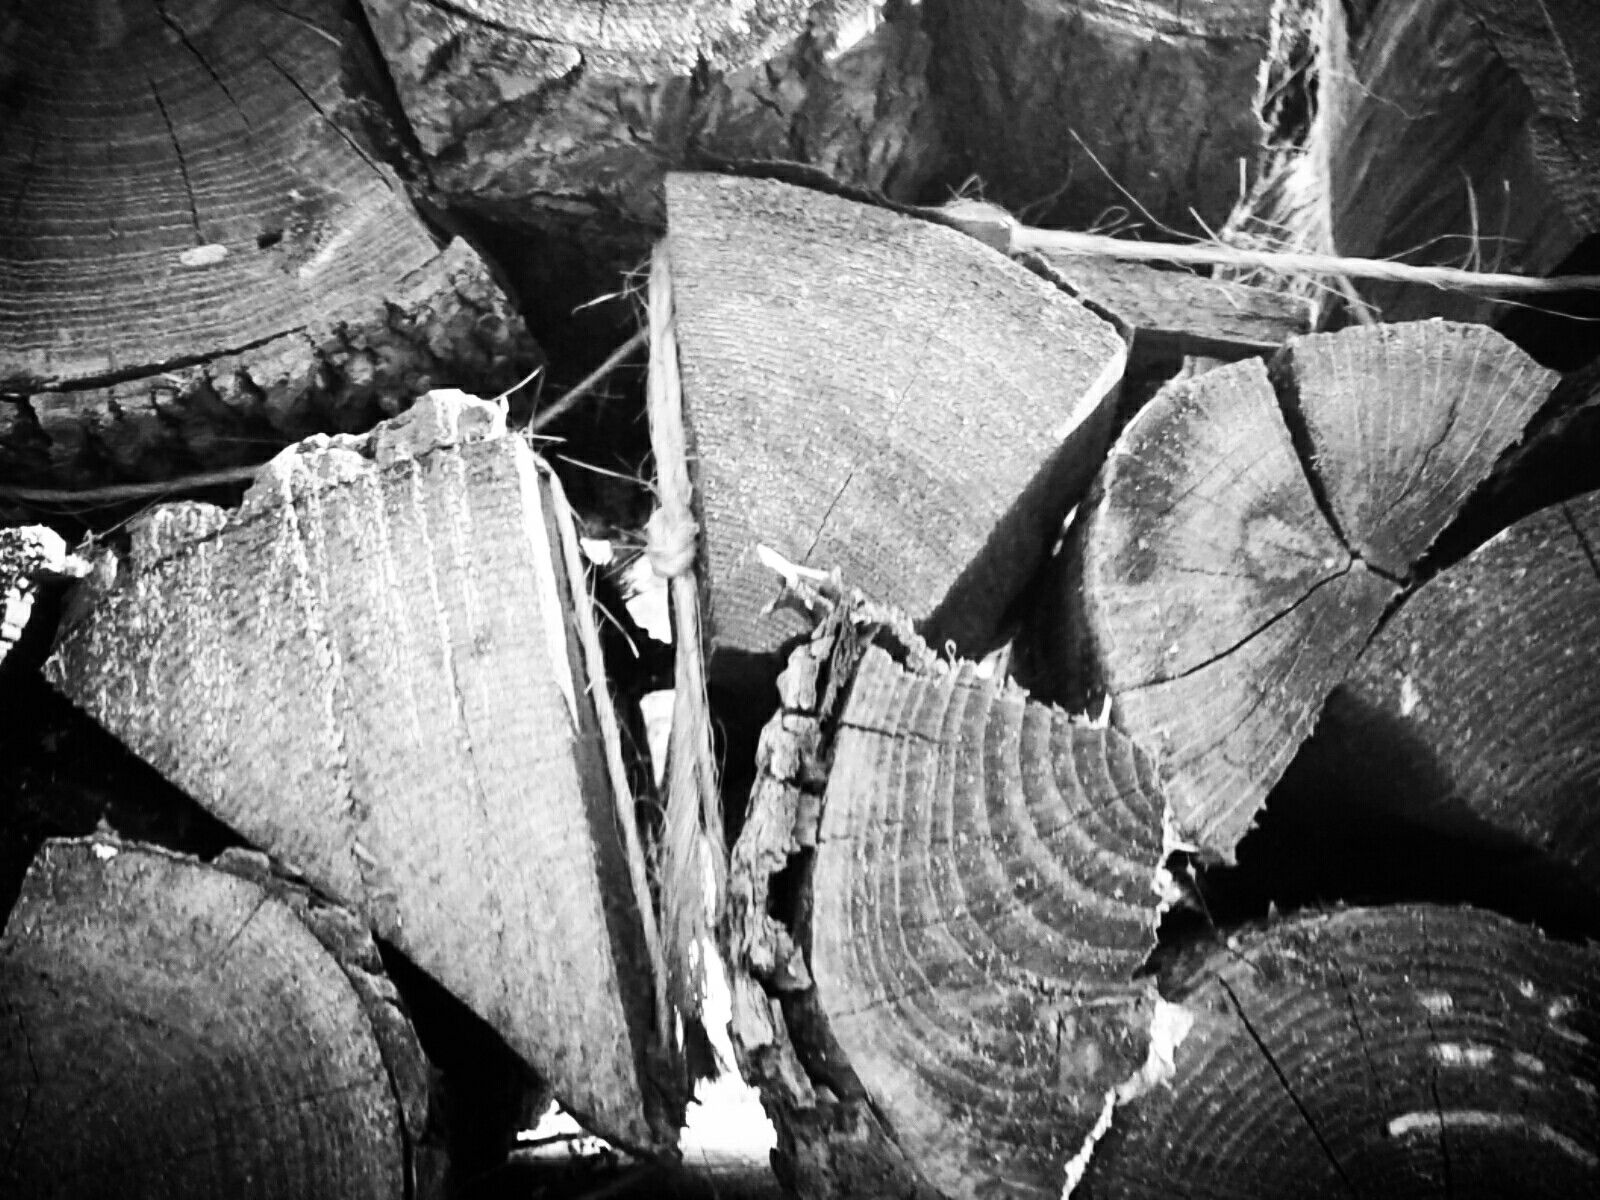 My wood pile in black and white. / by no64891 | My Photography ...